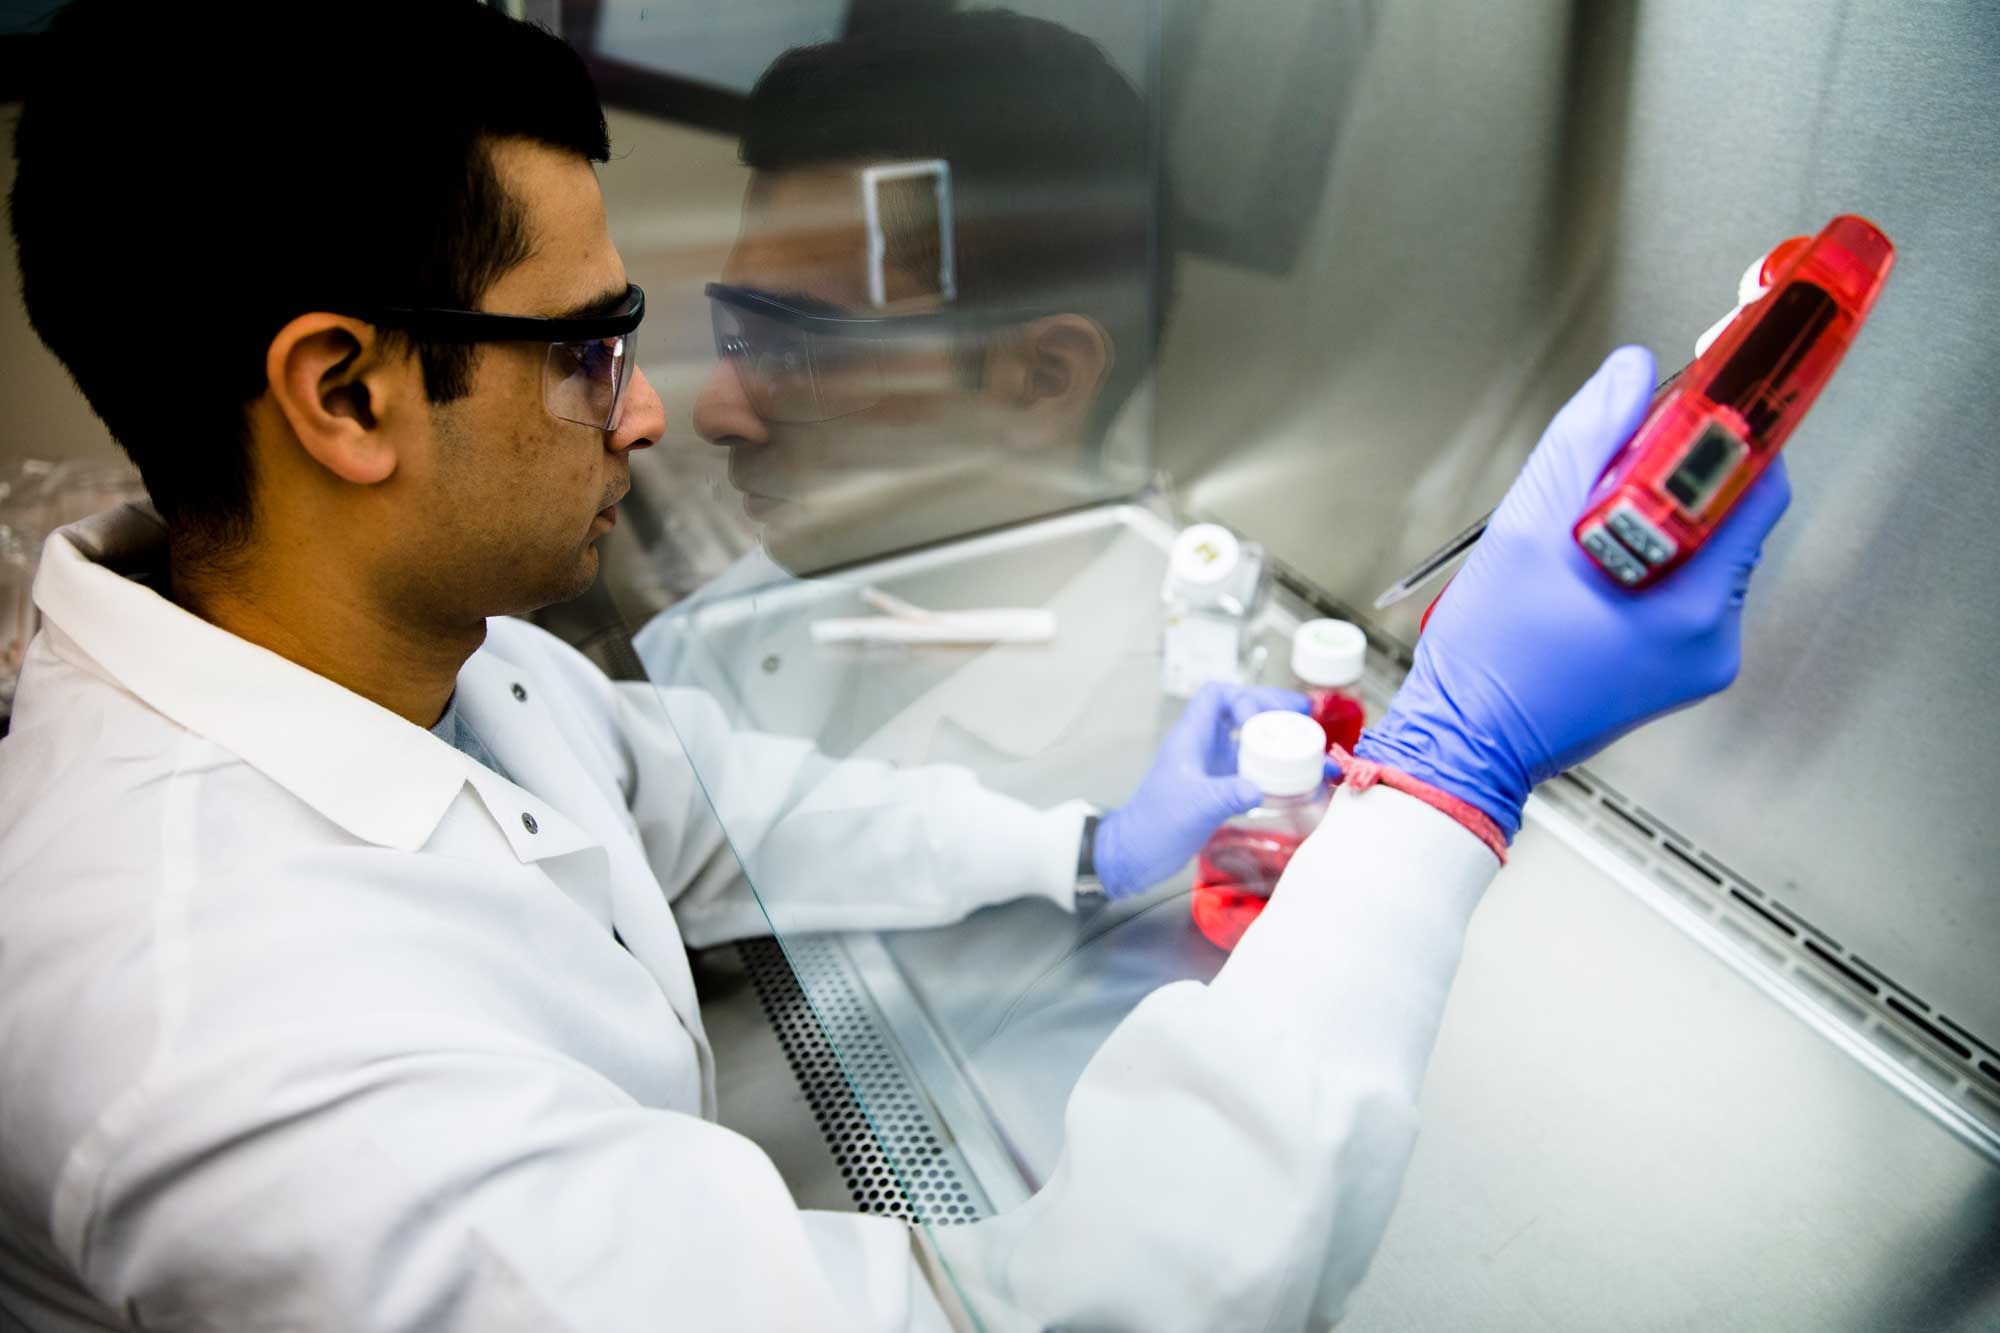 Sumit Bhatnagar, a PhD student in chemical engineering, maintains samples of cancerous cells for use in the development of a pill that could help screen for breast cancer. Tumors are targeted by a molecule that carries a fluorescent imaging agent in order to make earlier and more accurate breast cancer diagnoses. Image credit: Evan Dougherty, Michigan Engineering